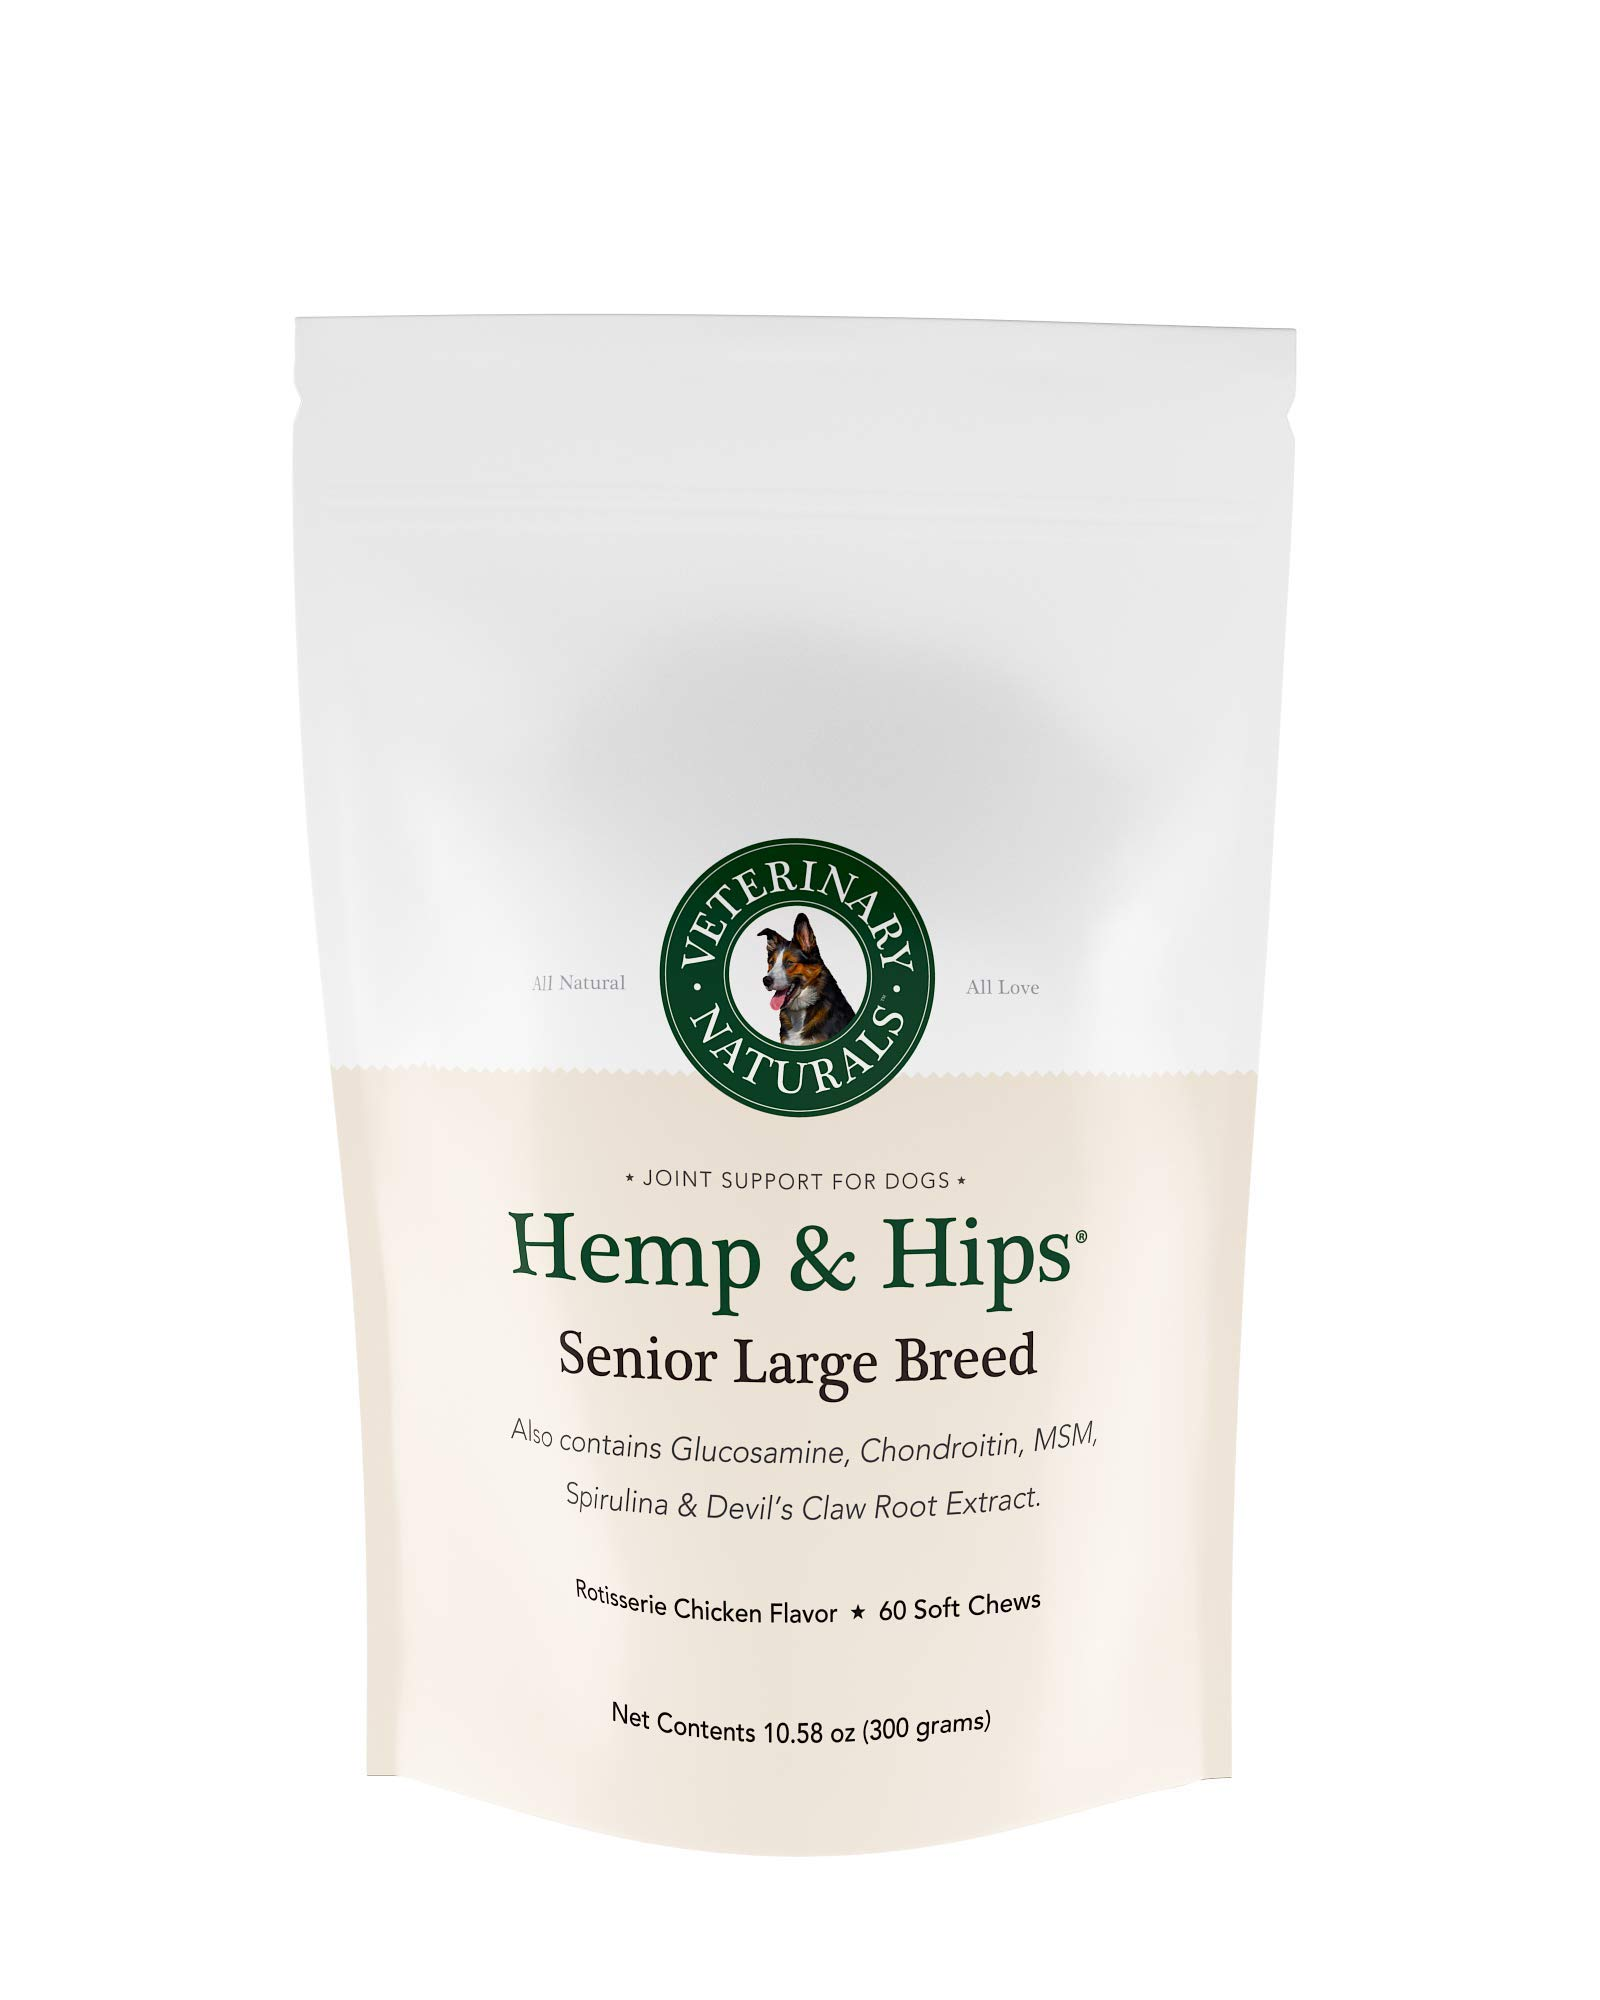 Veterinary Naturals Hemp & Hips Dog Joint Supplement - Glucosamine and Hemp Oil for Dogs - 'Senior Large Breed' Dog Arthritis Supplement - 60 Soft Chew Senior Dog Vitamins, Rotisserie Chicken Flavor by Veterinary Naturals